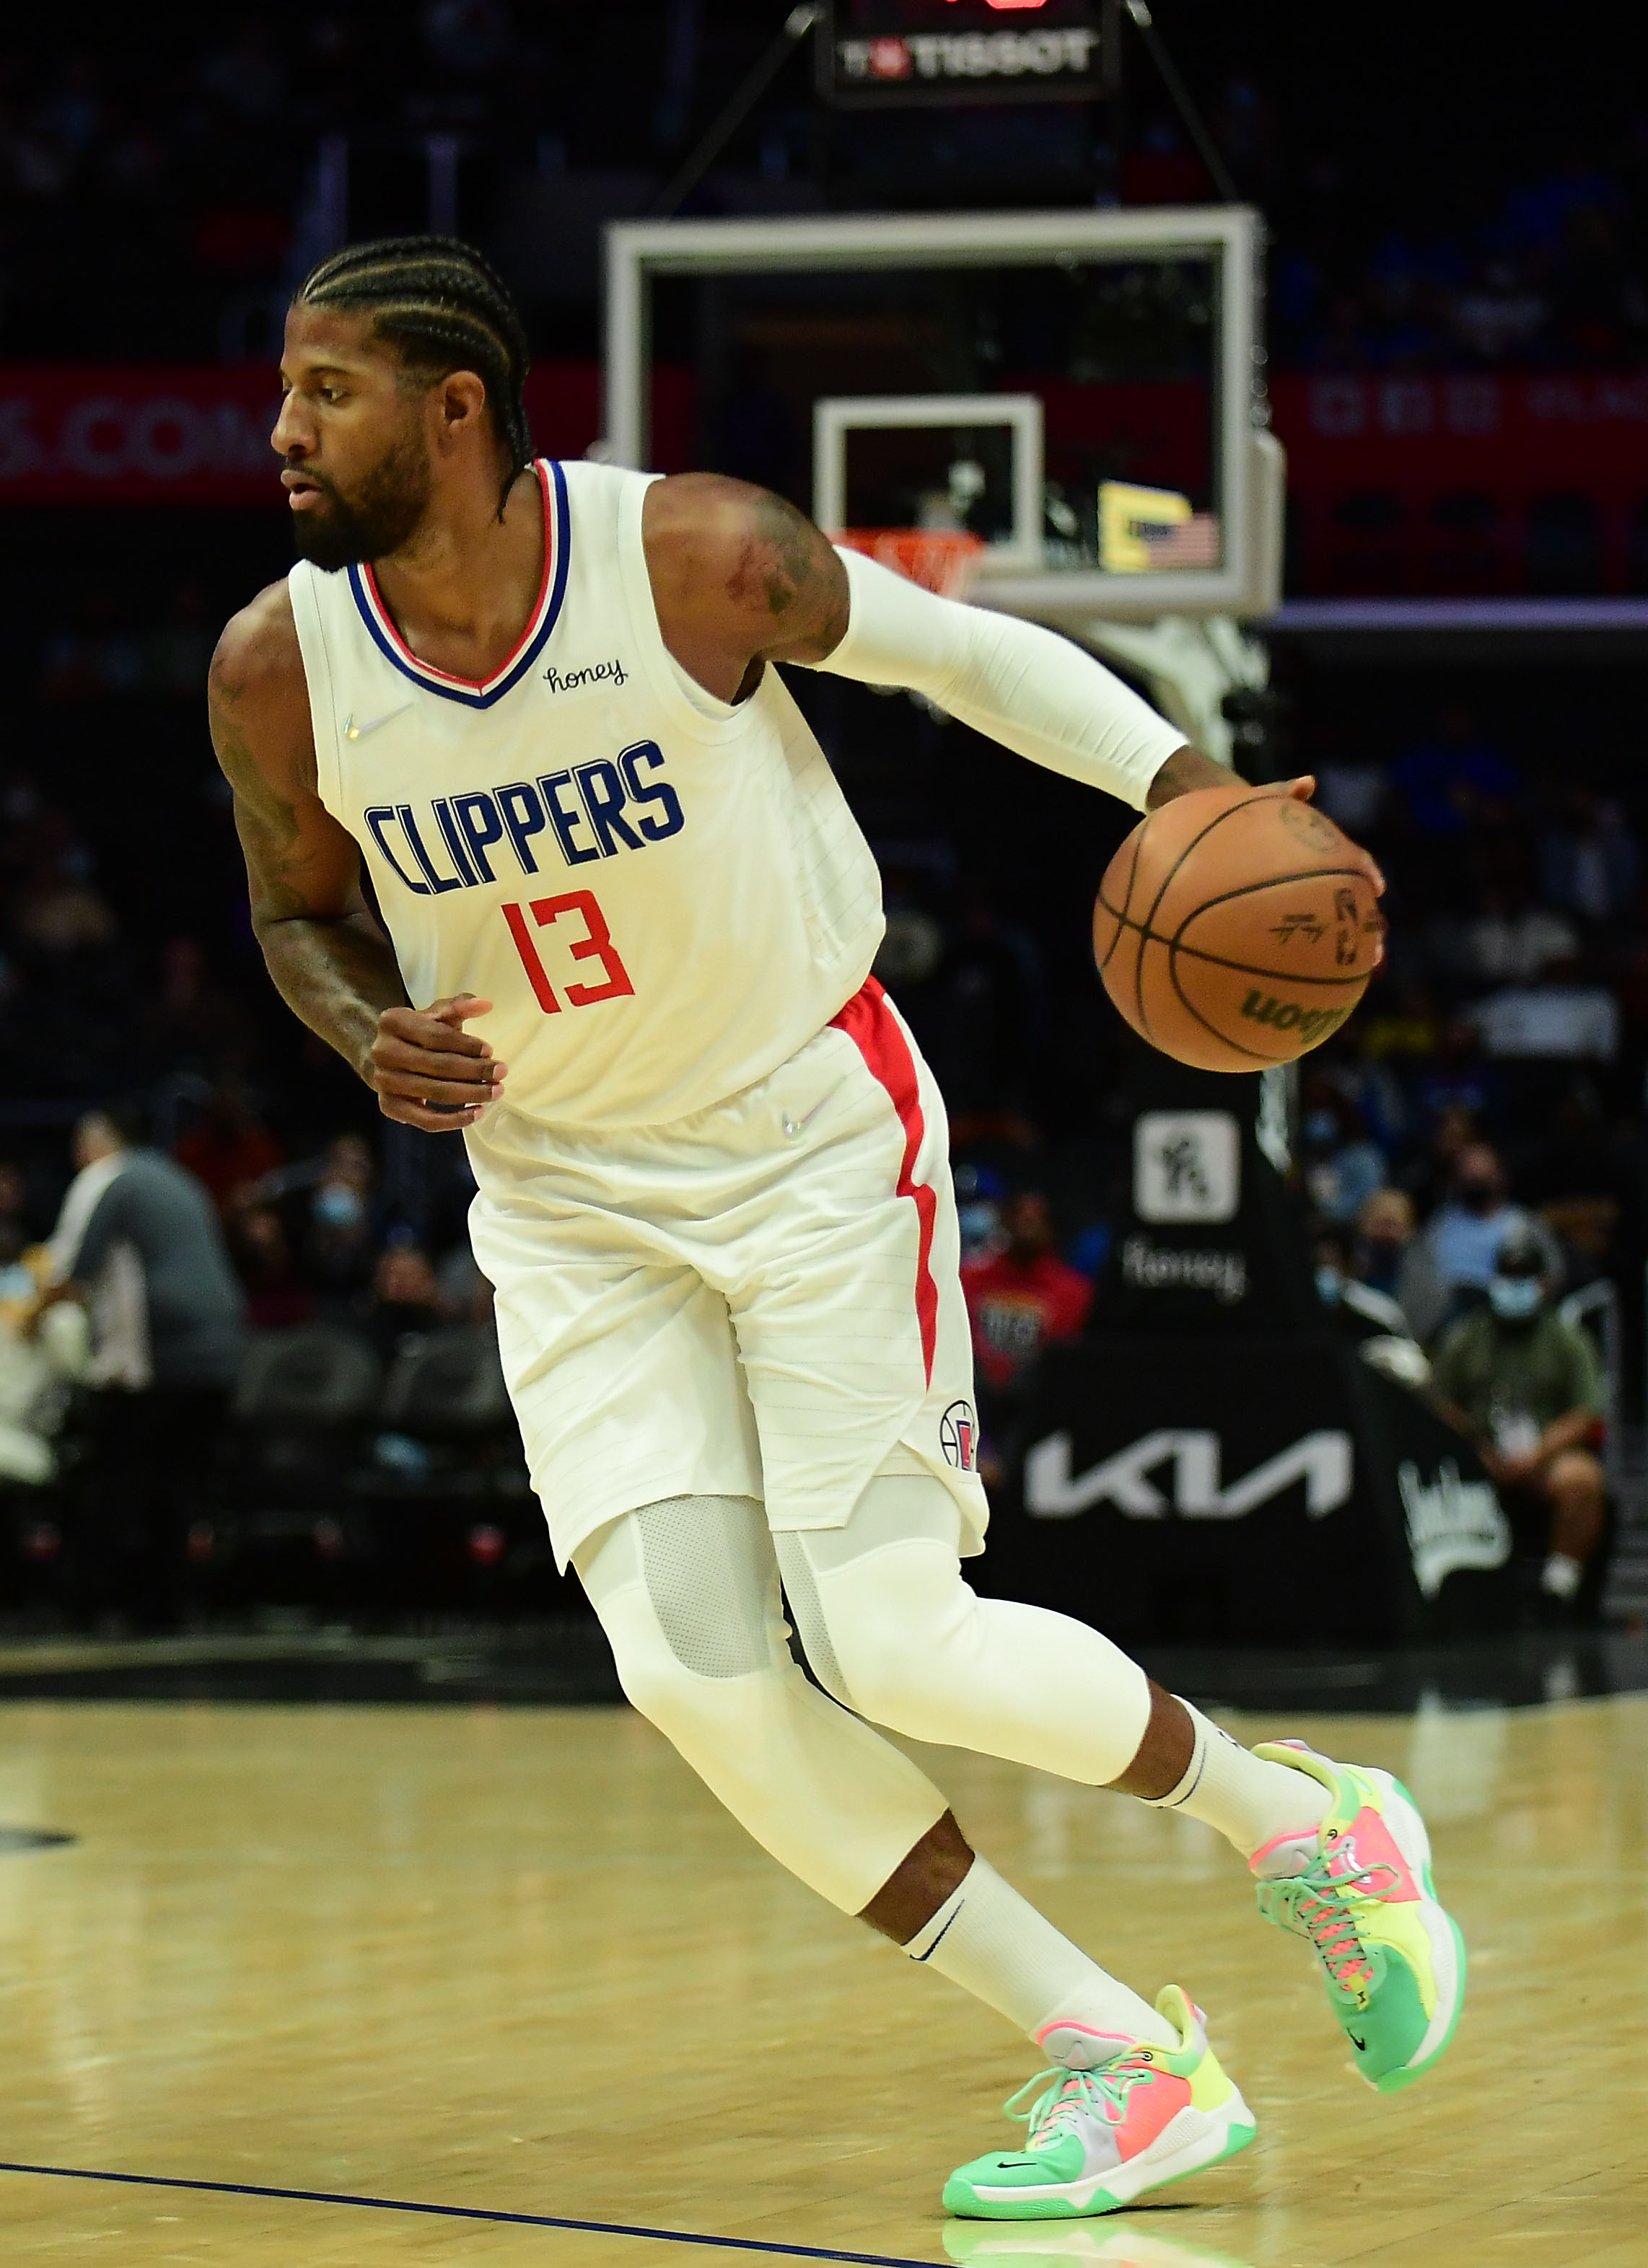 Los Angeles Clippers guard Paul George (13) controls the ball against the Sacramento Kings during the first half at Staples Center.